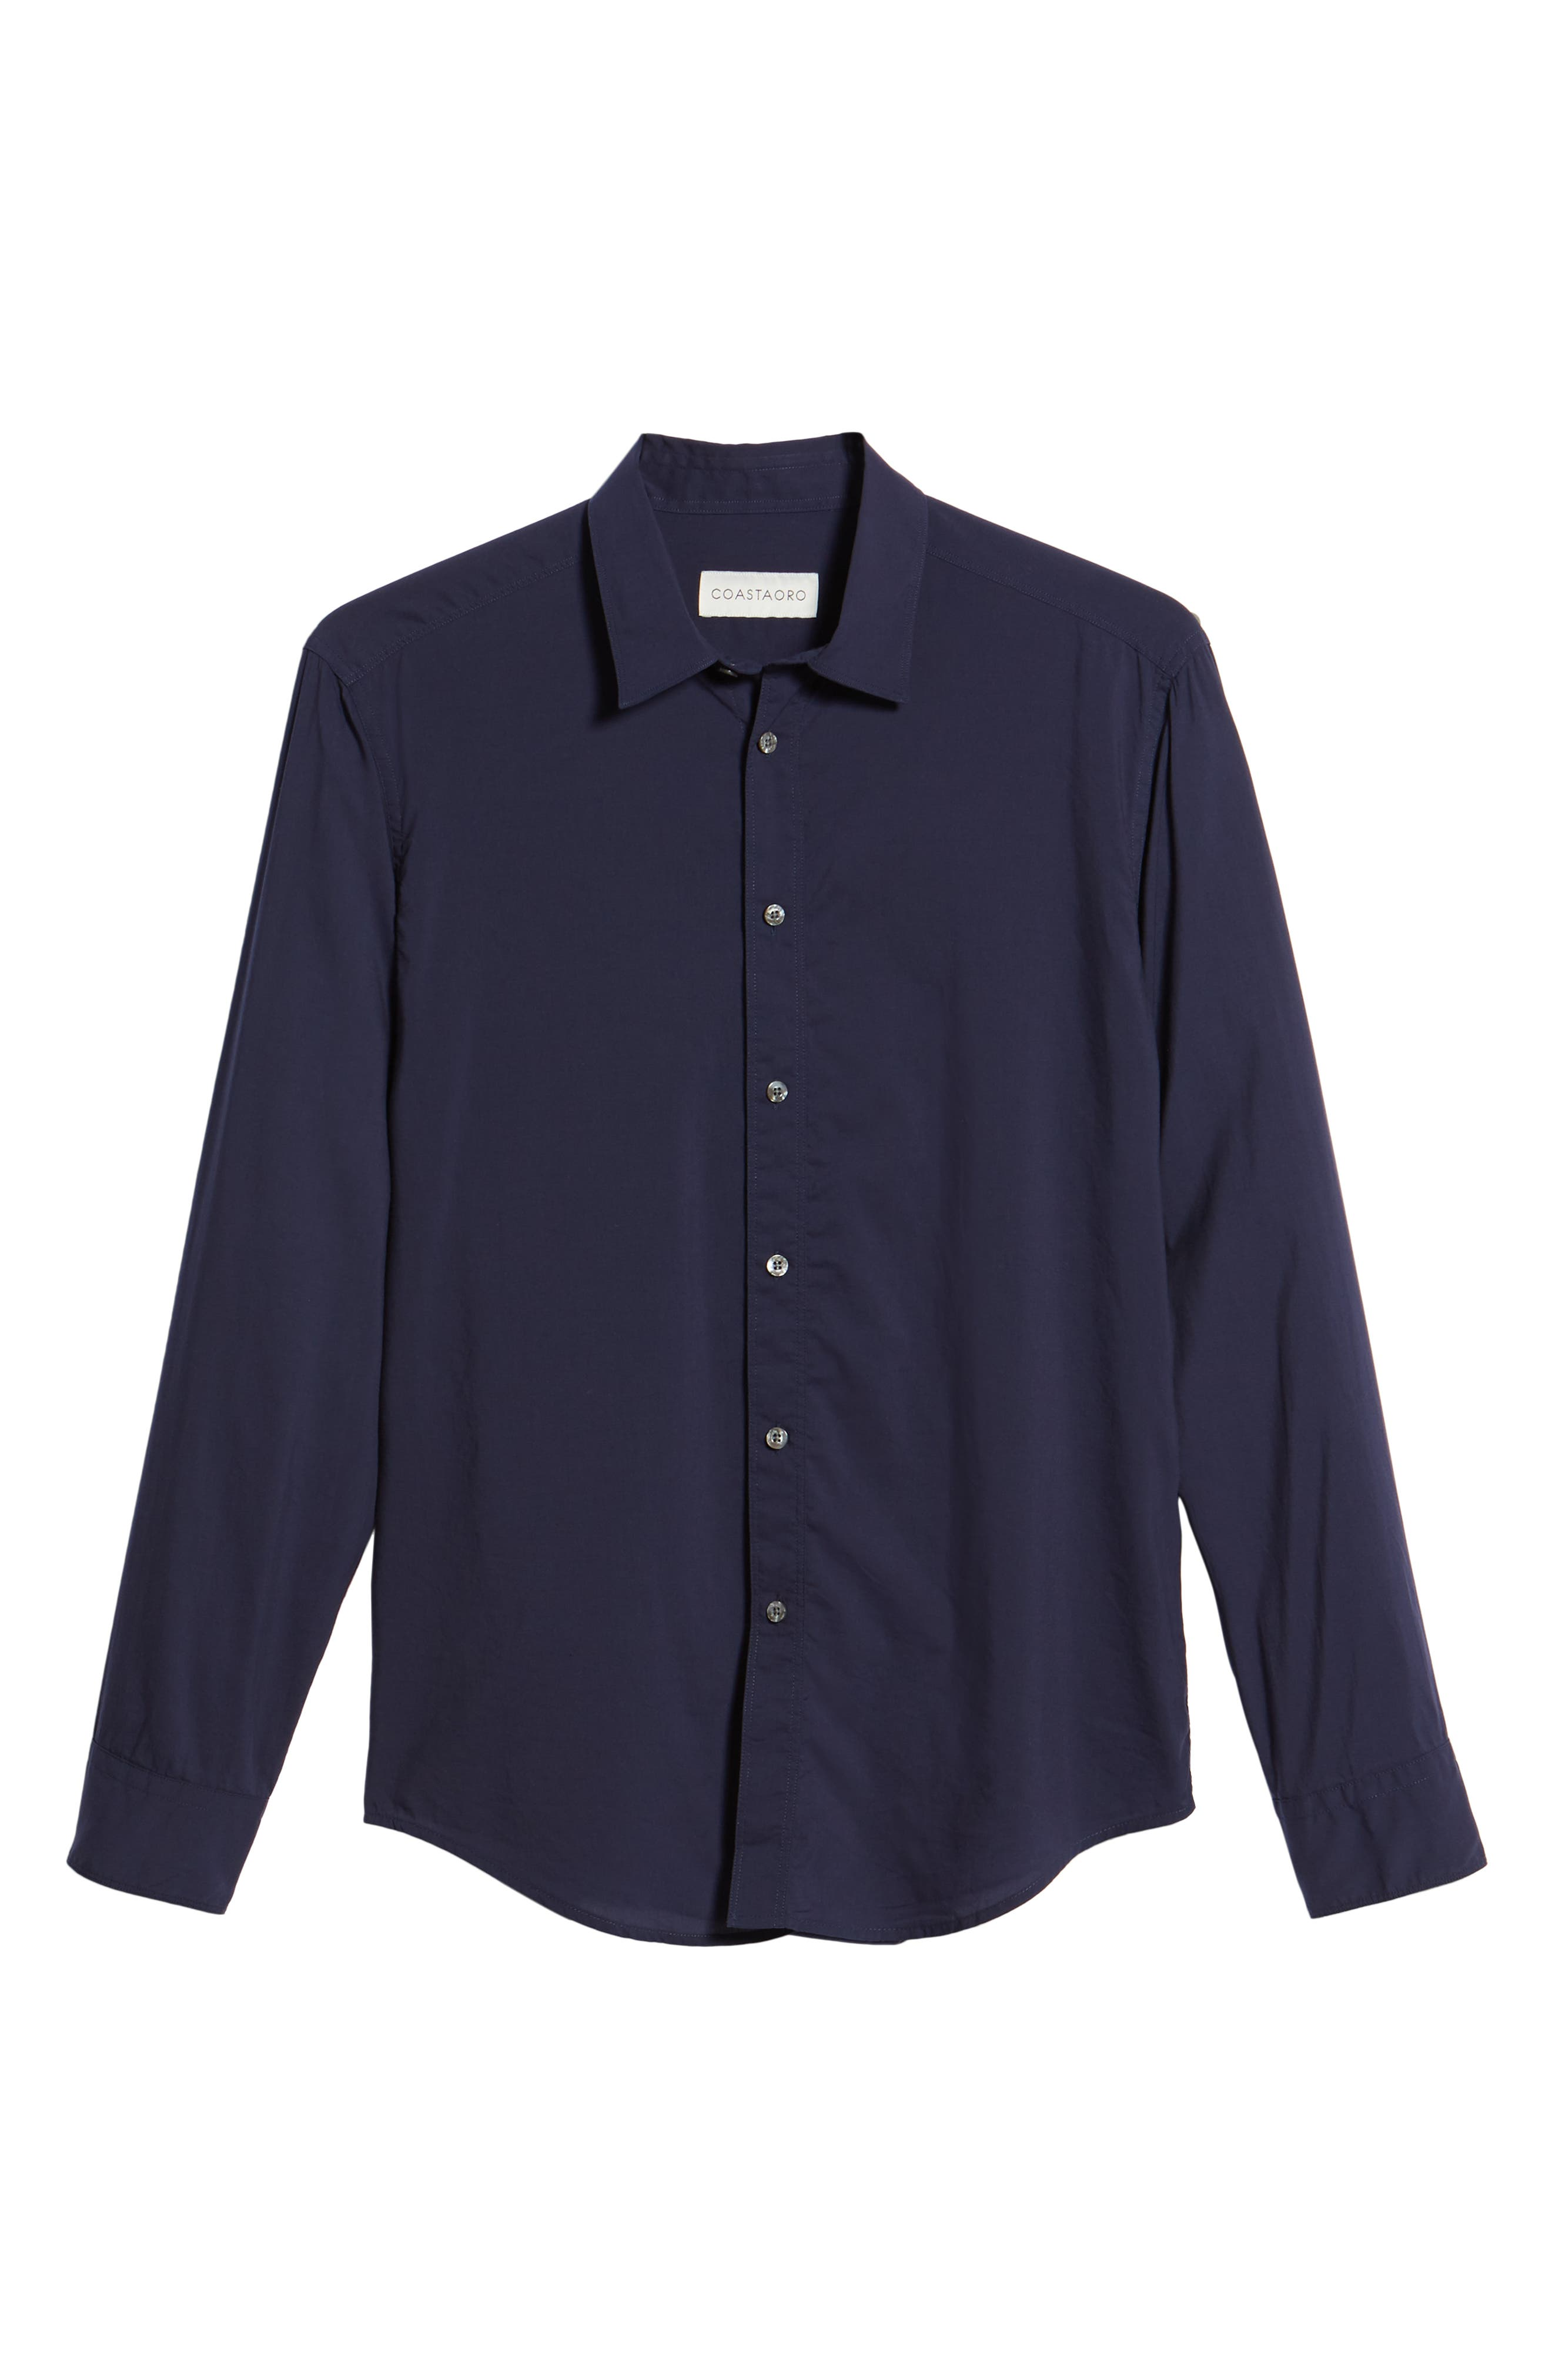 Pacifica Regular Fit Solid Sport Shirt,                             Alternate thumbnail 6, color,                             410